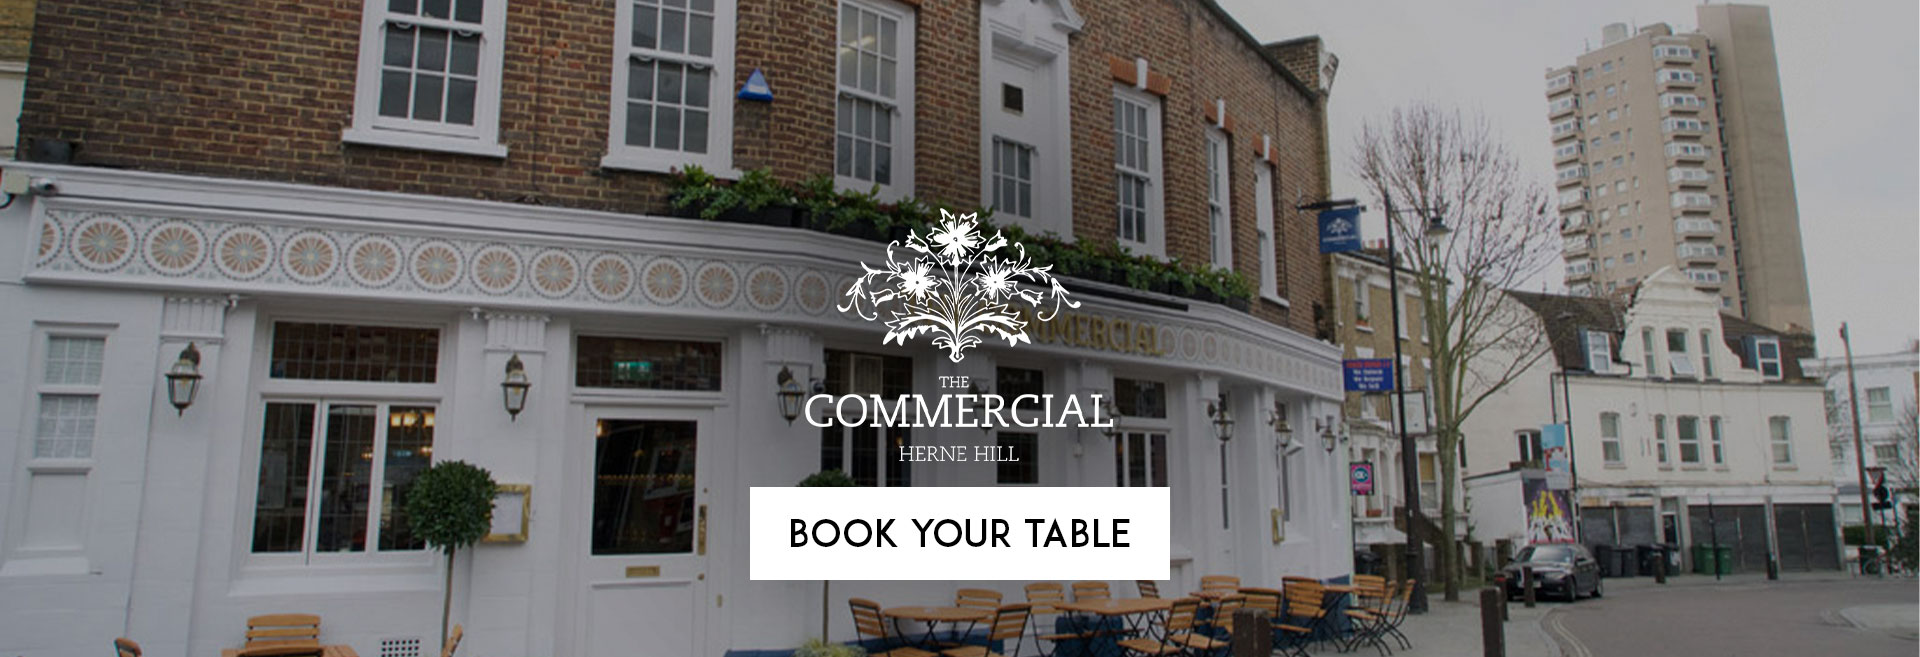 Book Your Table at The Commercial